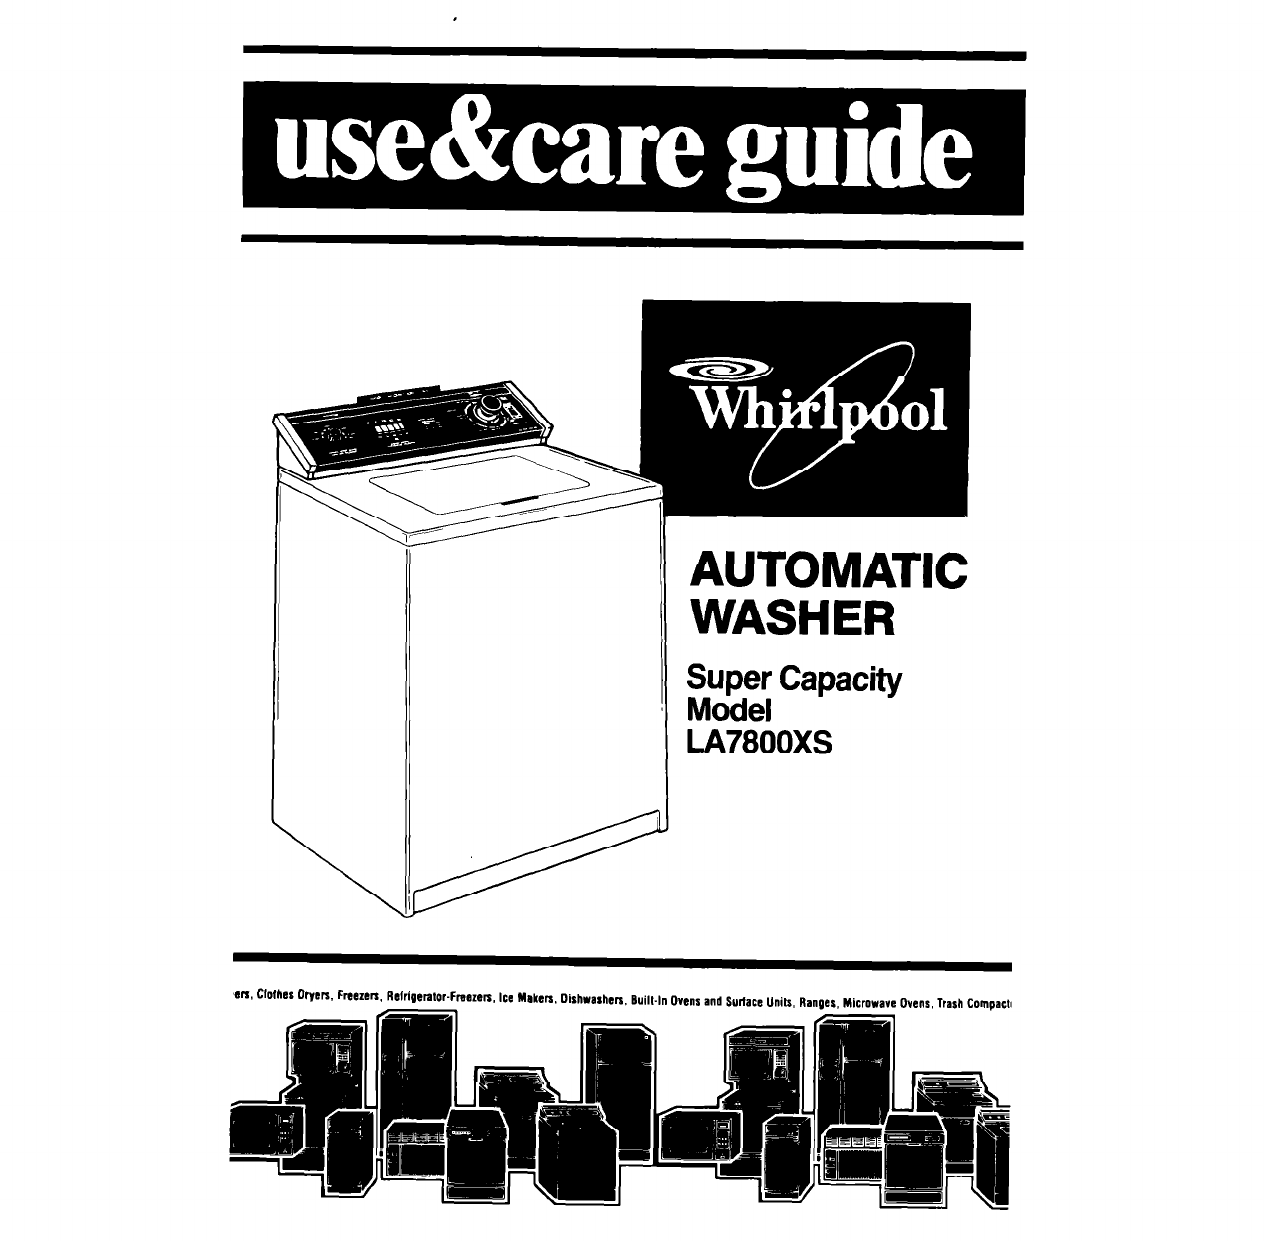 whirlpool washer la78ooxs user guide